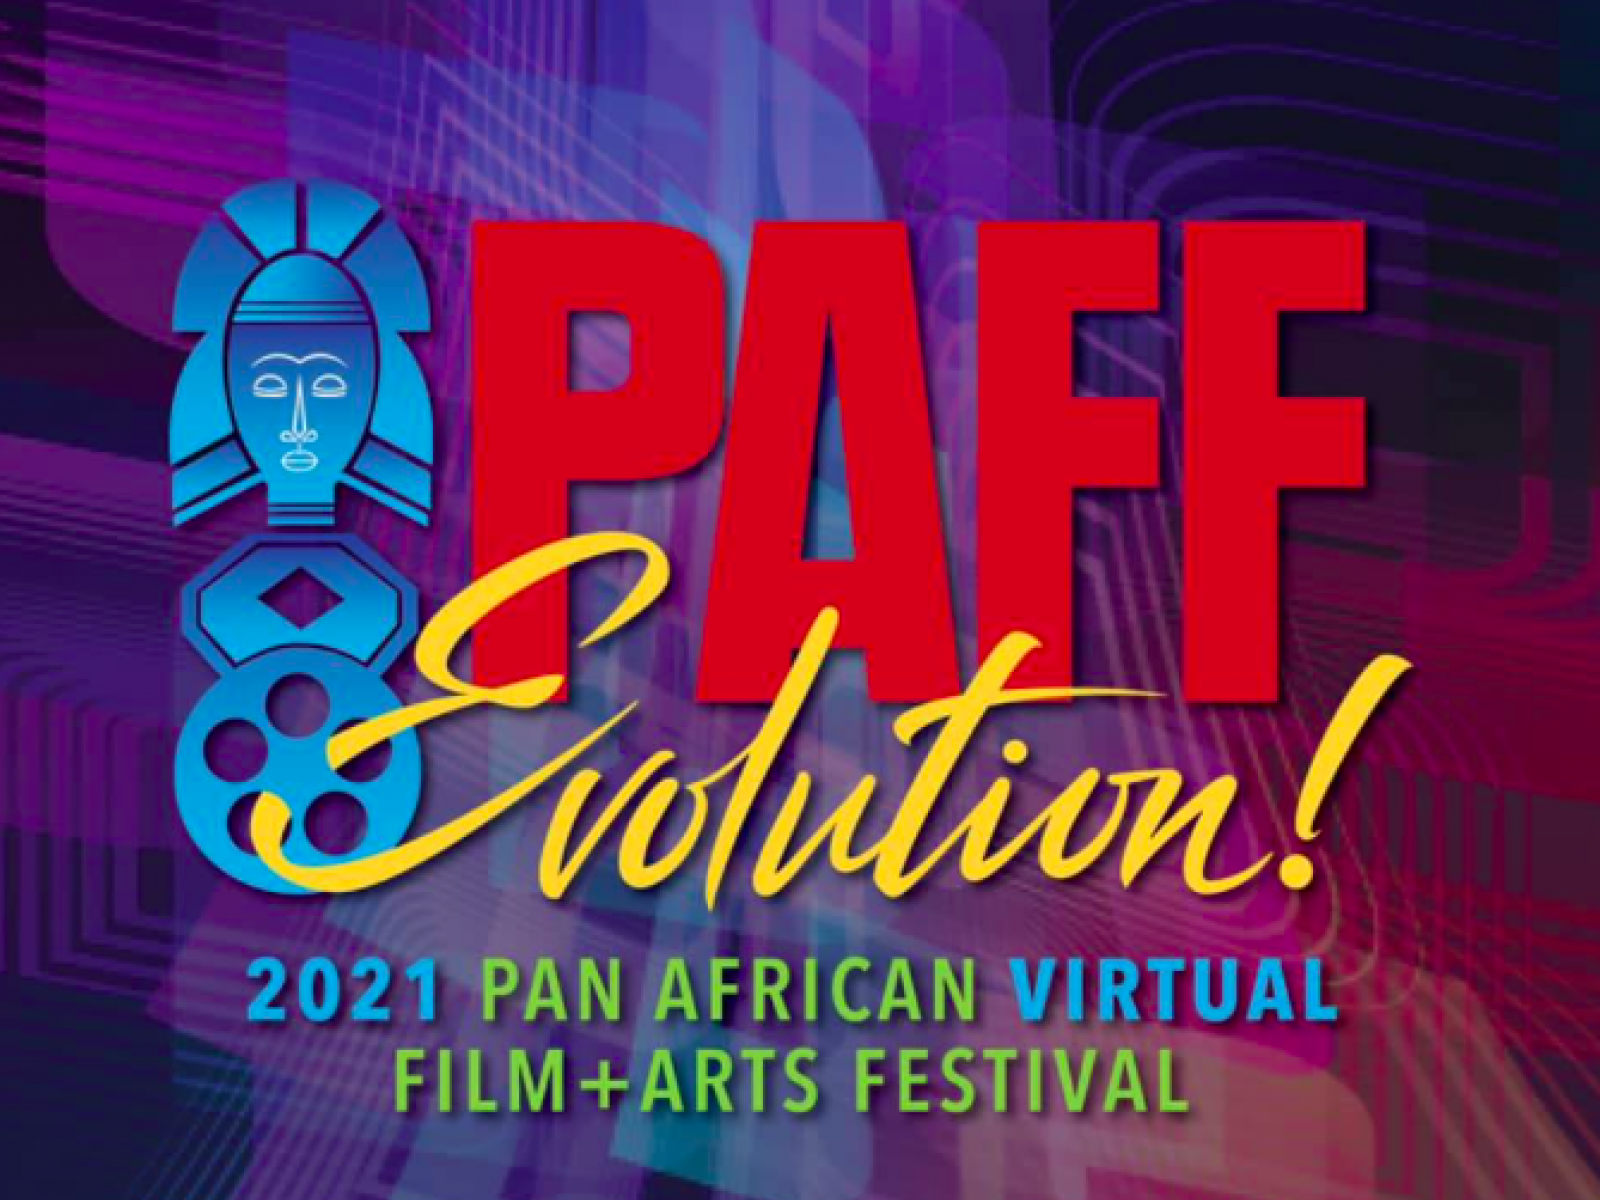 Main image for event titled The Pan African Film & Arts Festival